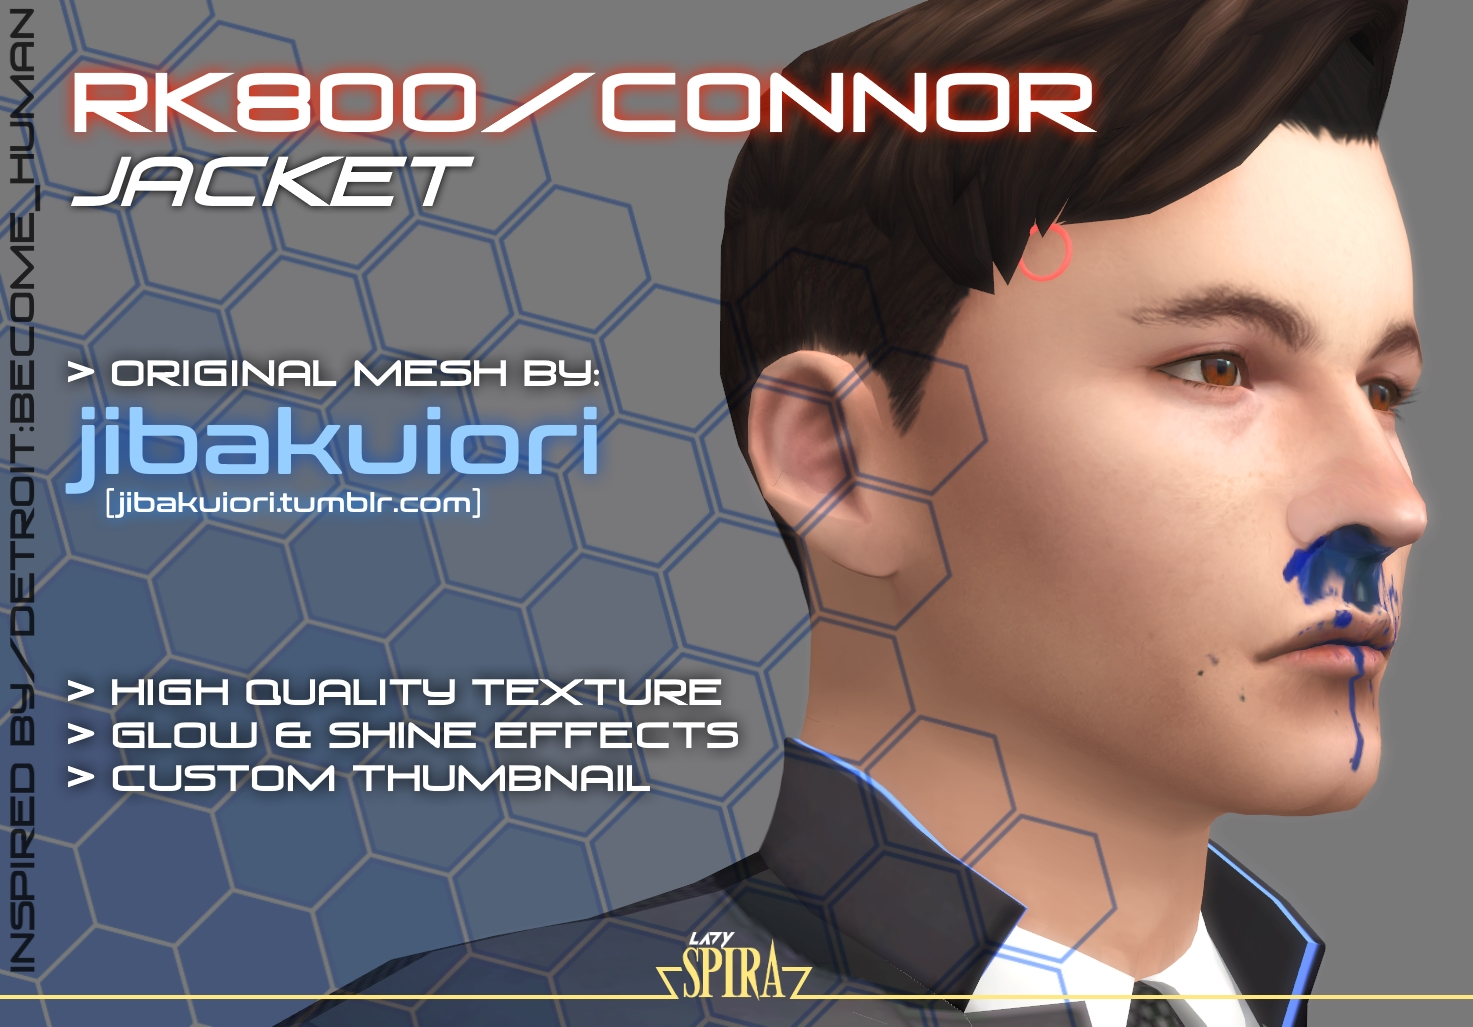 Mod The Sims - RK800 Connor Jacket RE-TEXTURED by LadySpira